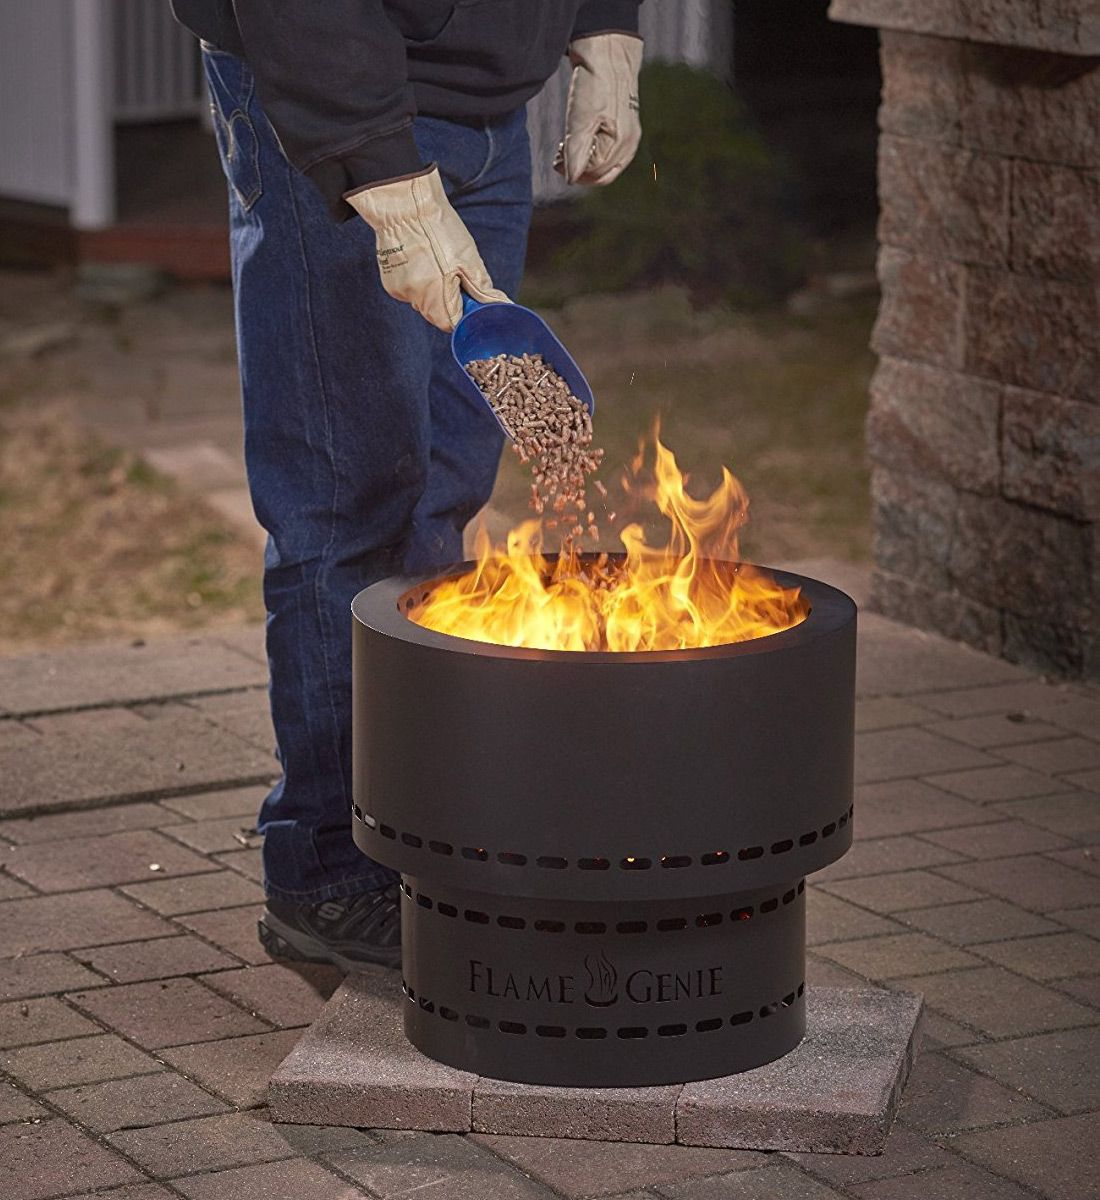 Flame Genie Wood Pellet Smokeless Fire Pit Outdoor Fire Pit Designs Fire Pit Outdoor Fire Pit